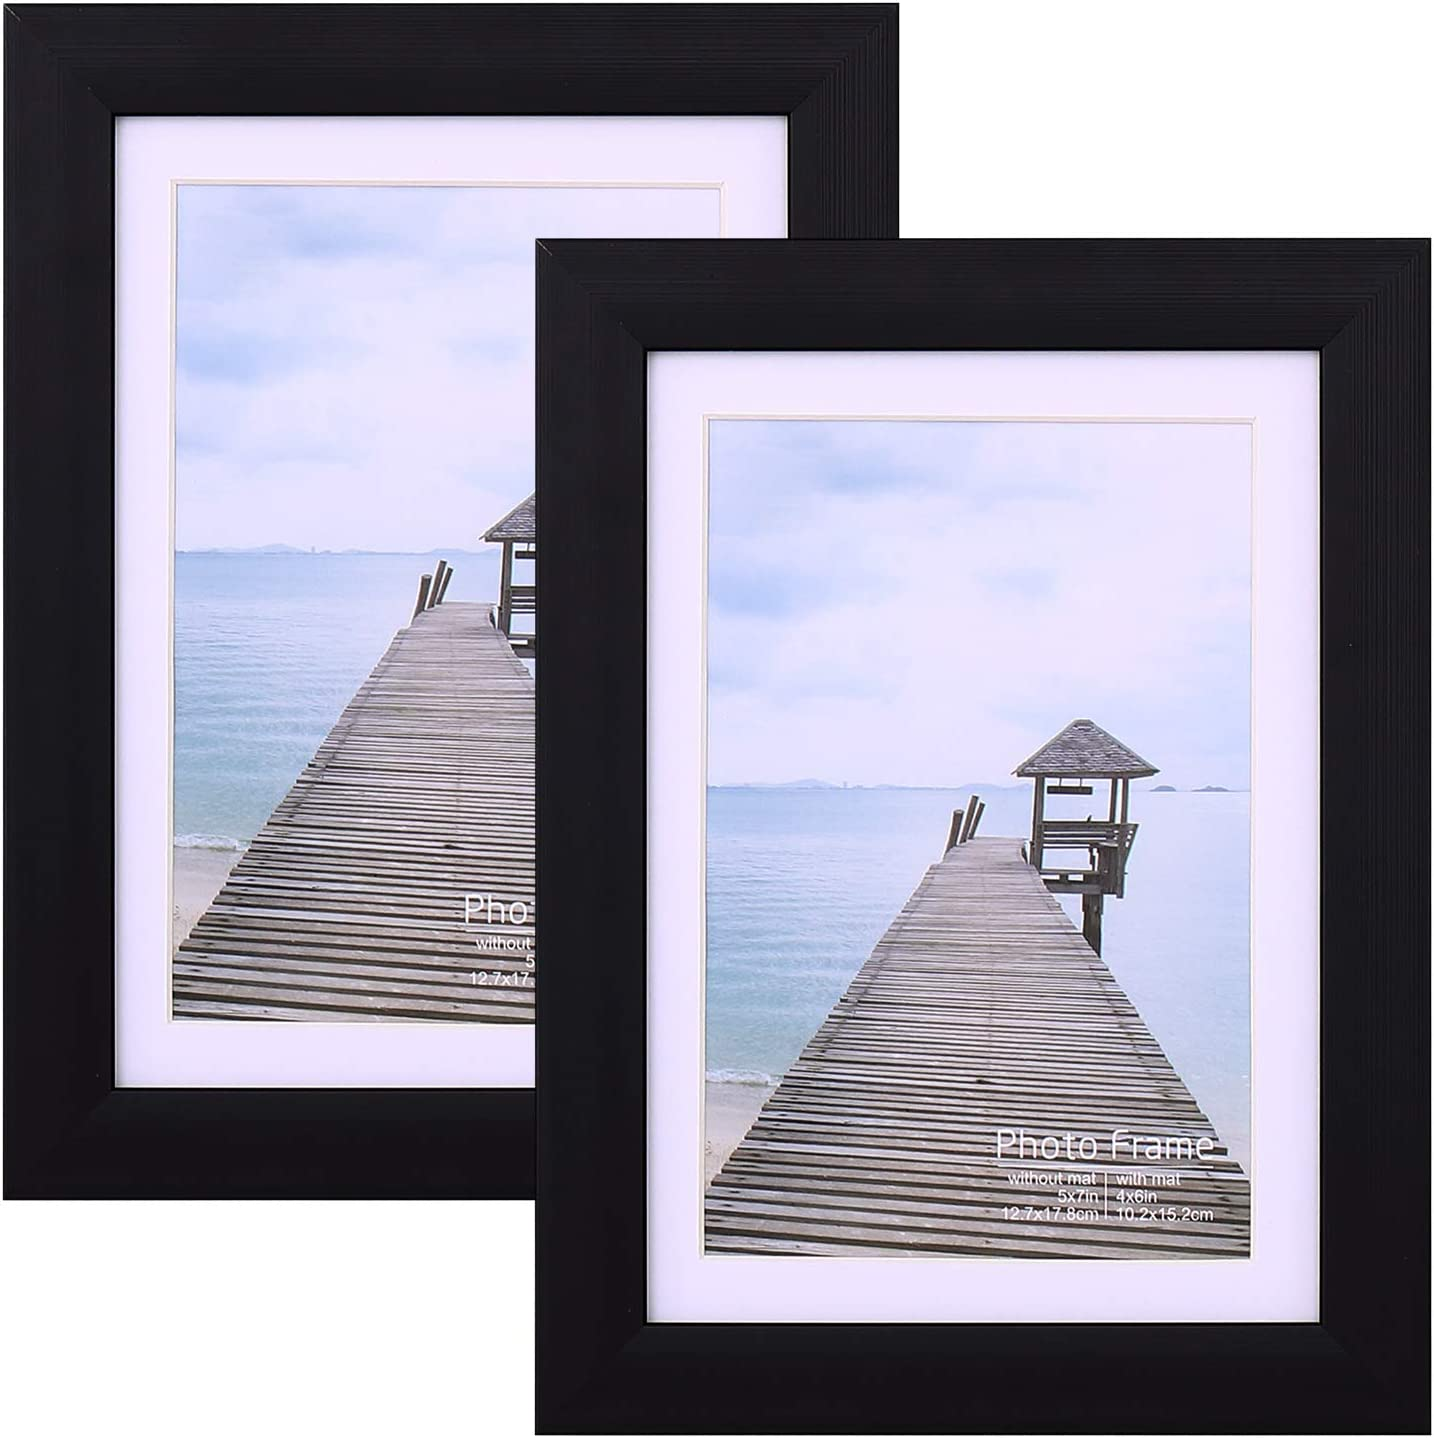 Plastic 5x7, Set of 2 Picture Frame for Wall Mounting or Tabletop with High-Definition Glass, Black Photo Frame for Home Living Room Decor Friends Gifts